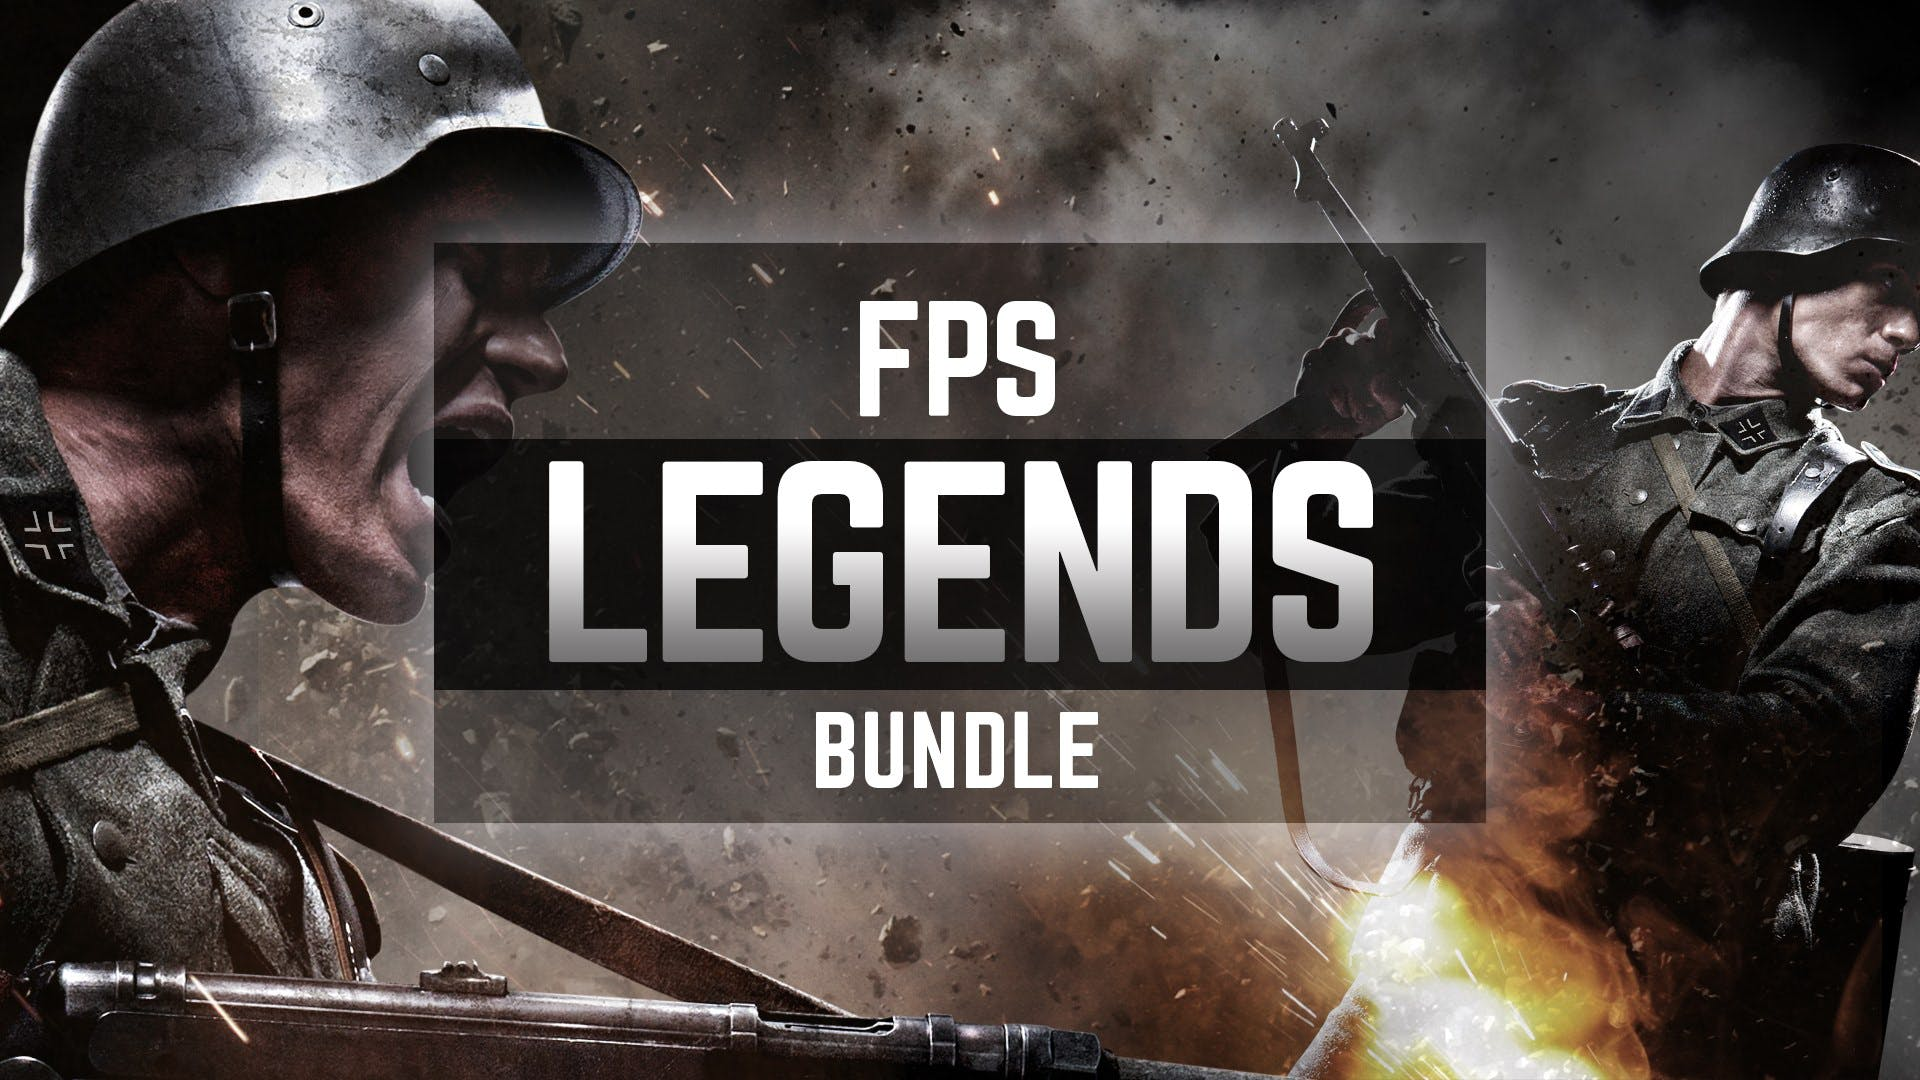 Fanatical FPS Legends Bundle